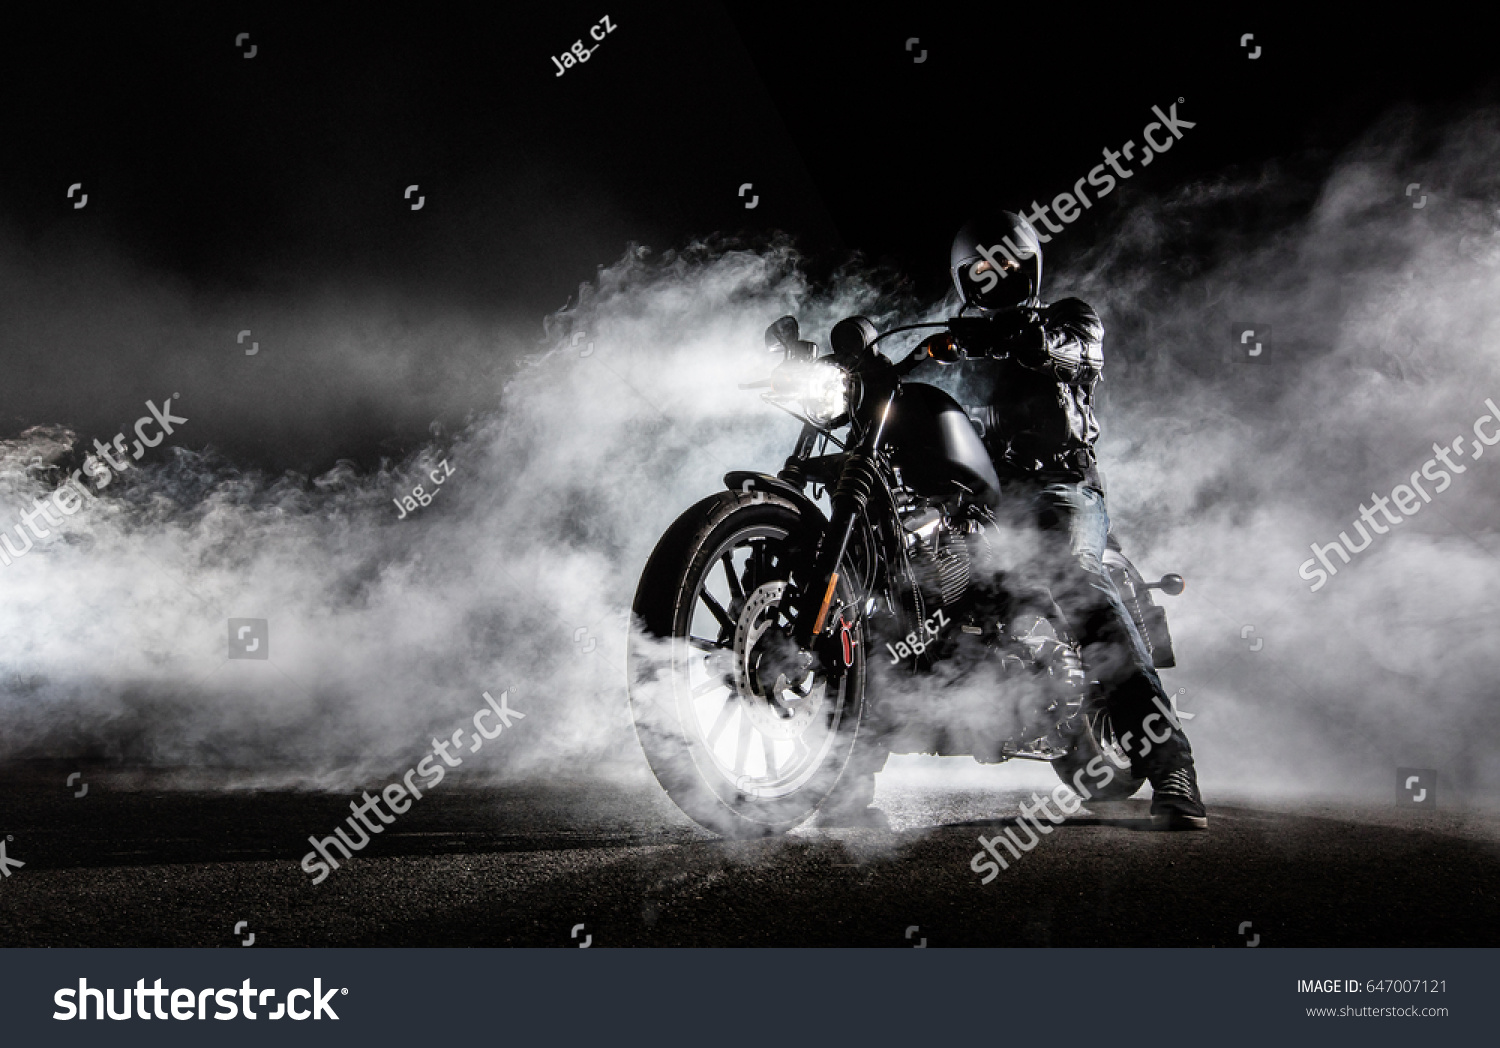 High power motorcycle chopper with man rider at night. Fog with backlights on background. #647007121